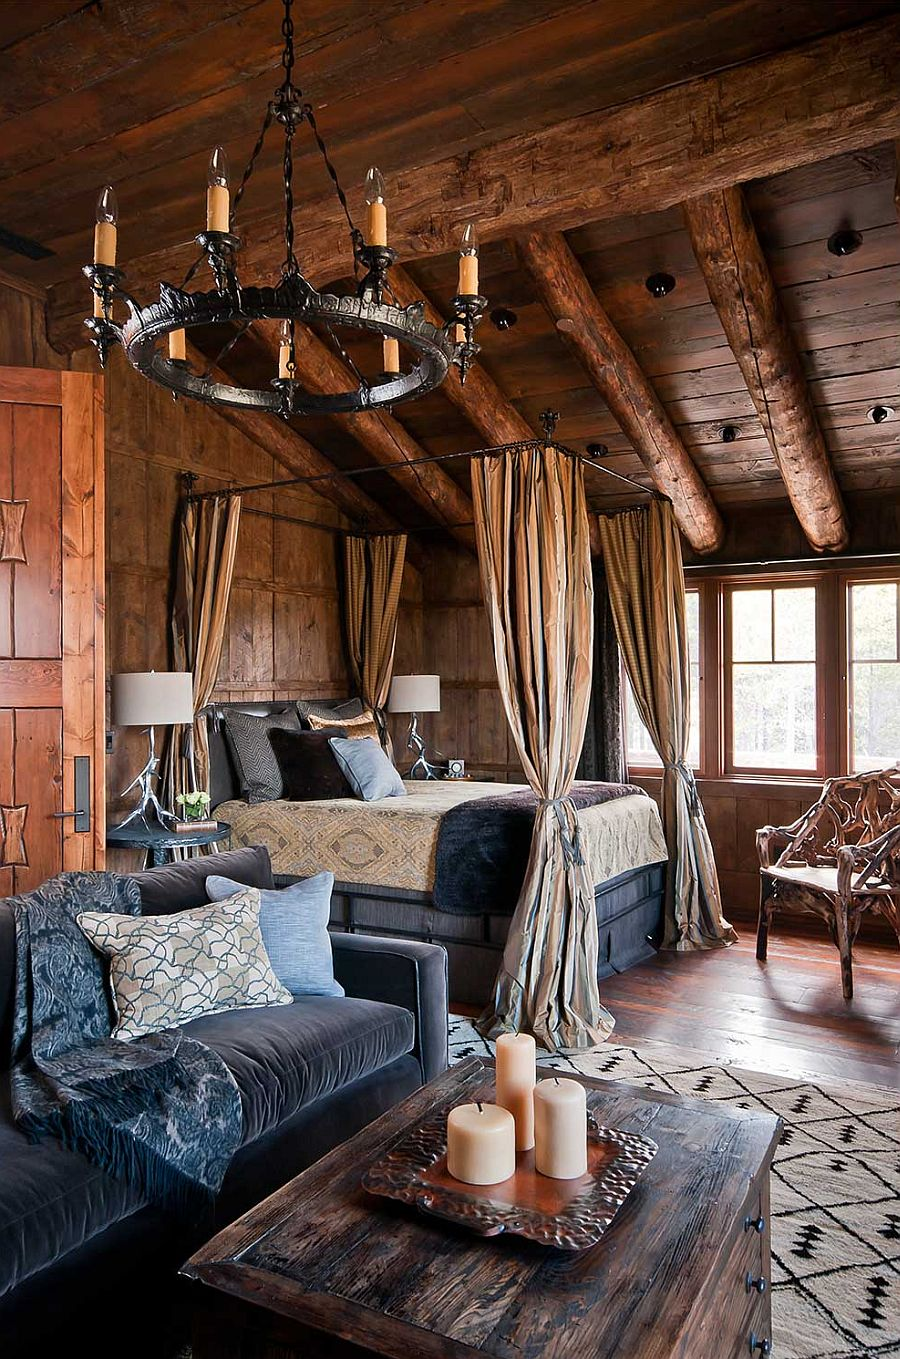 Dancing hearts picture perfect hillside escape in montana for Log cabin interiors modern